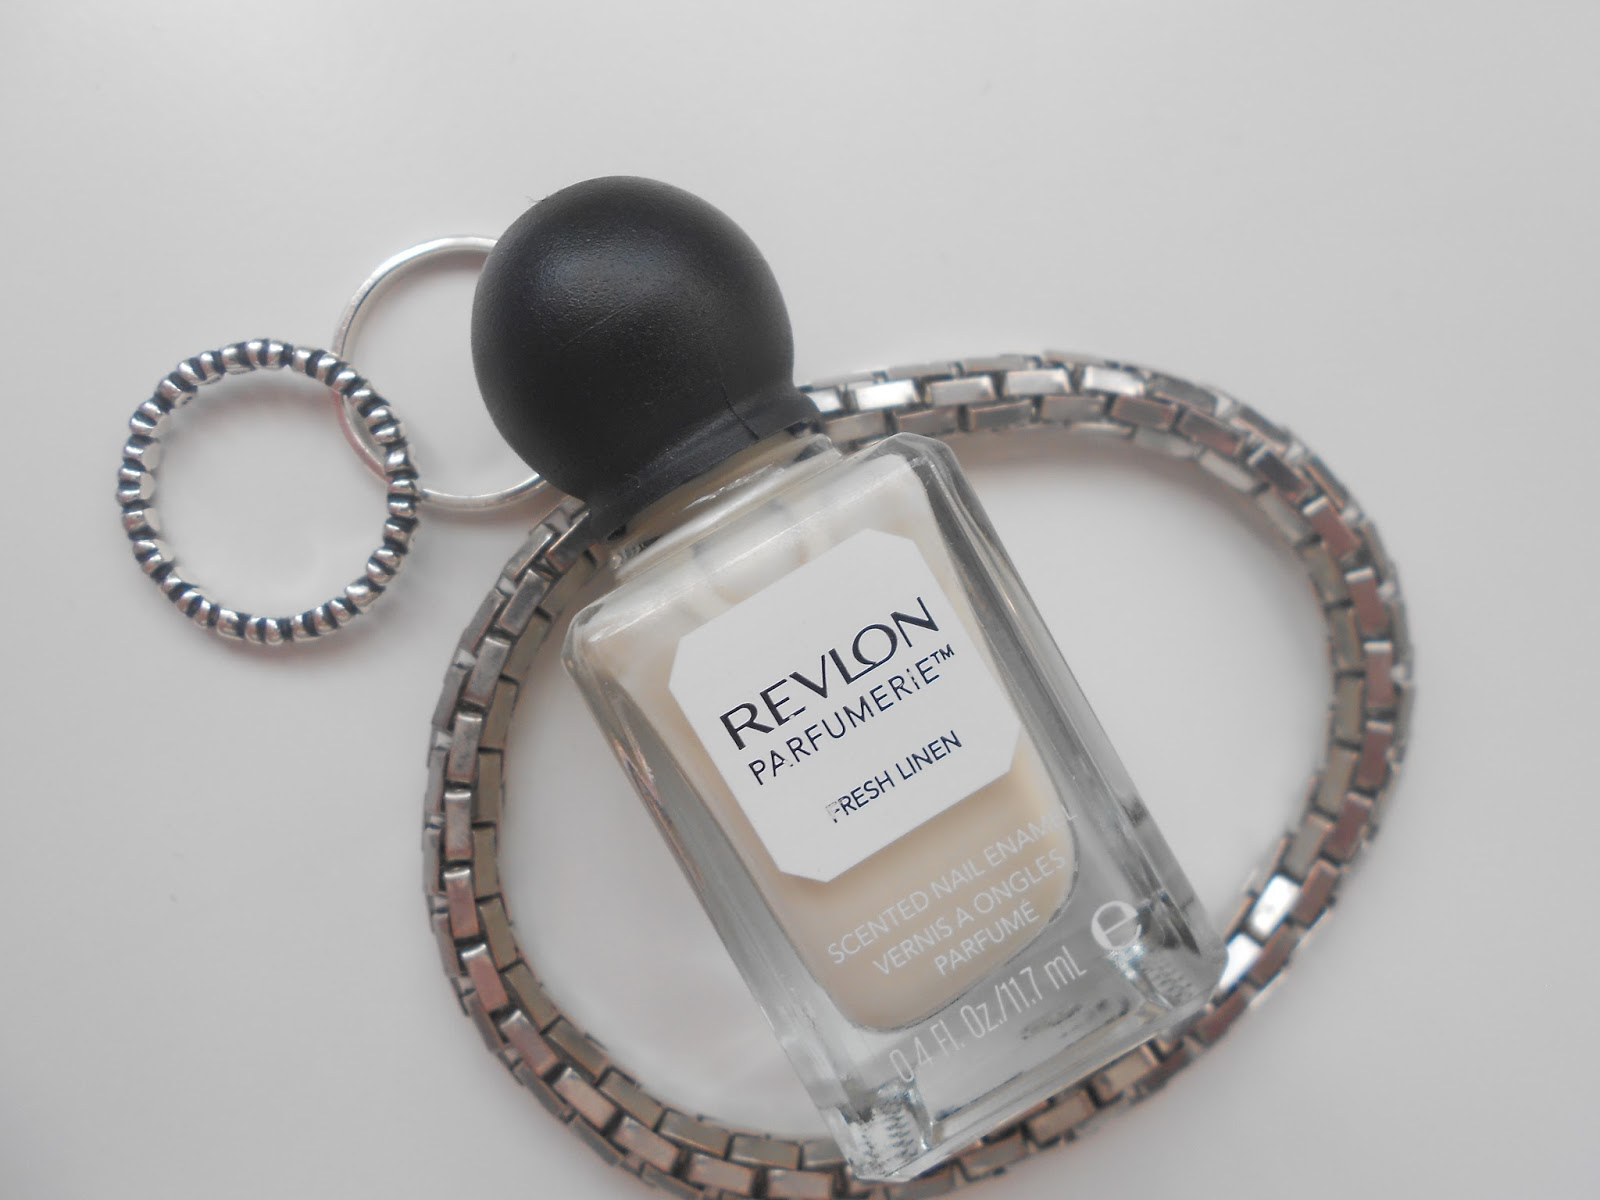 revlon parfumerie fresh linen review